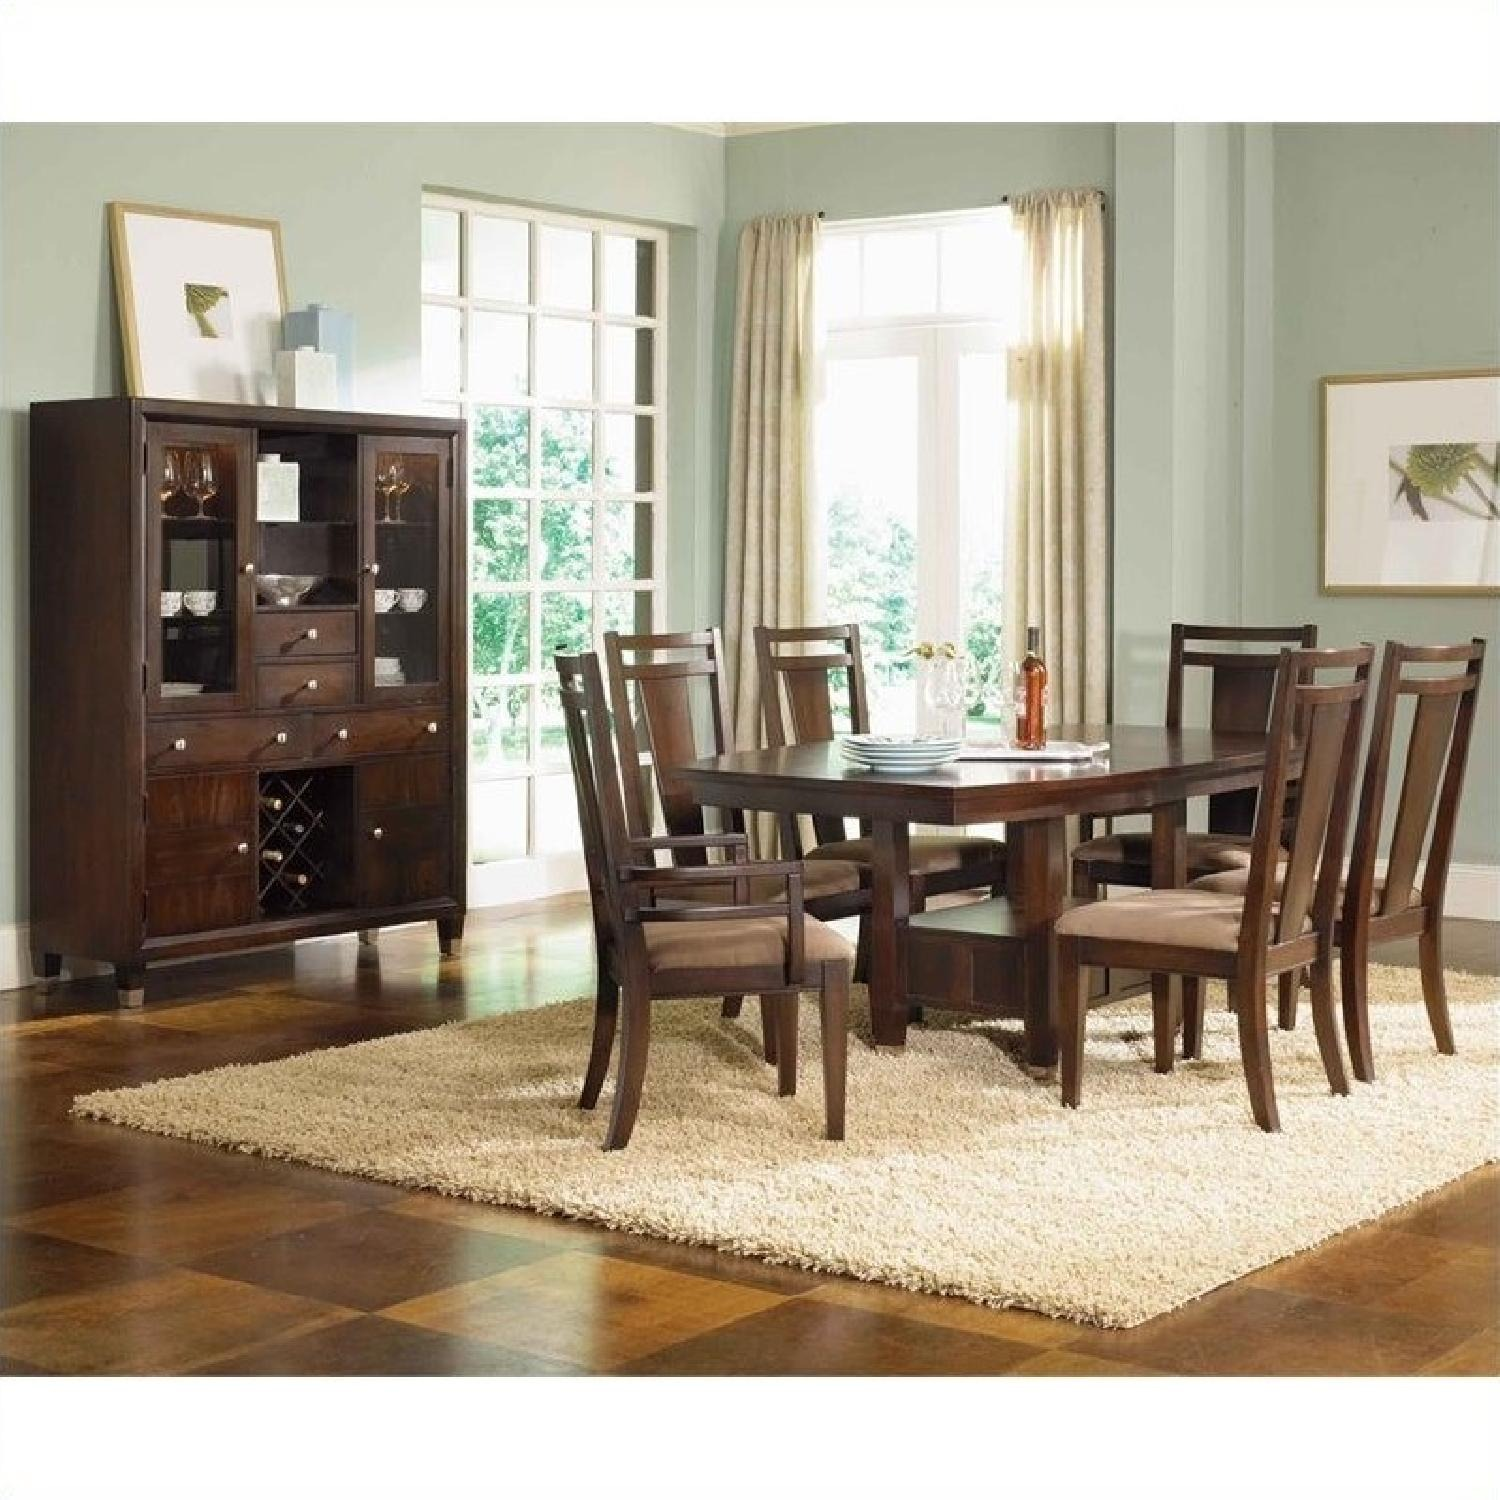 Broyhill Furniture 8-Piece Dining Set - image-0